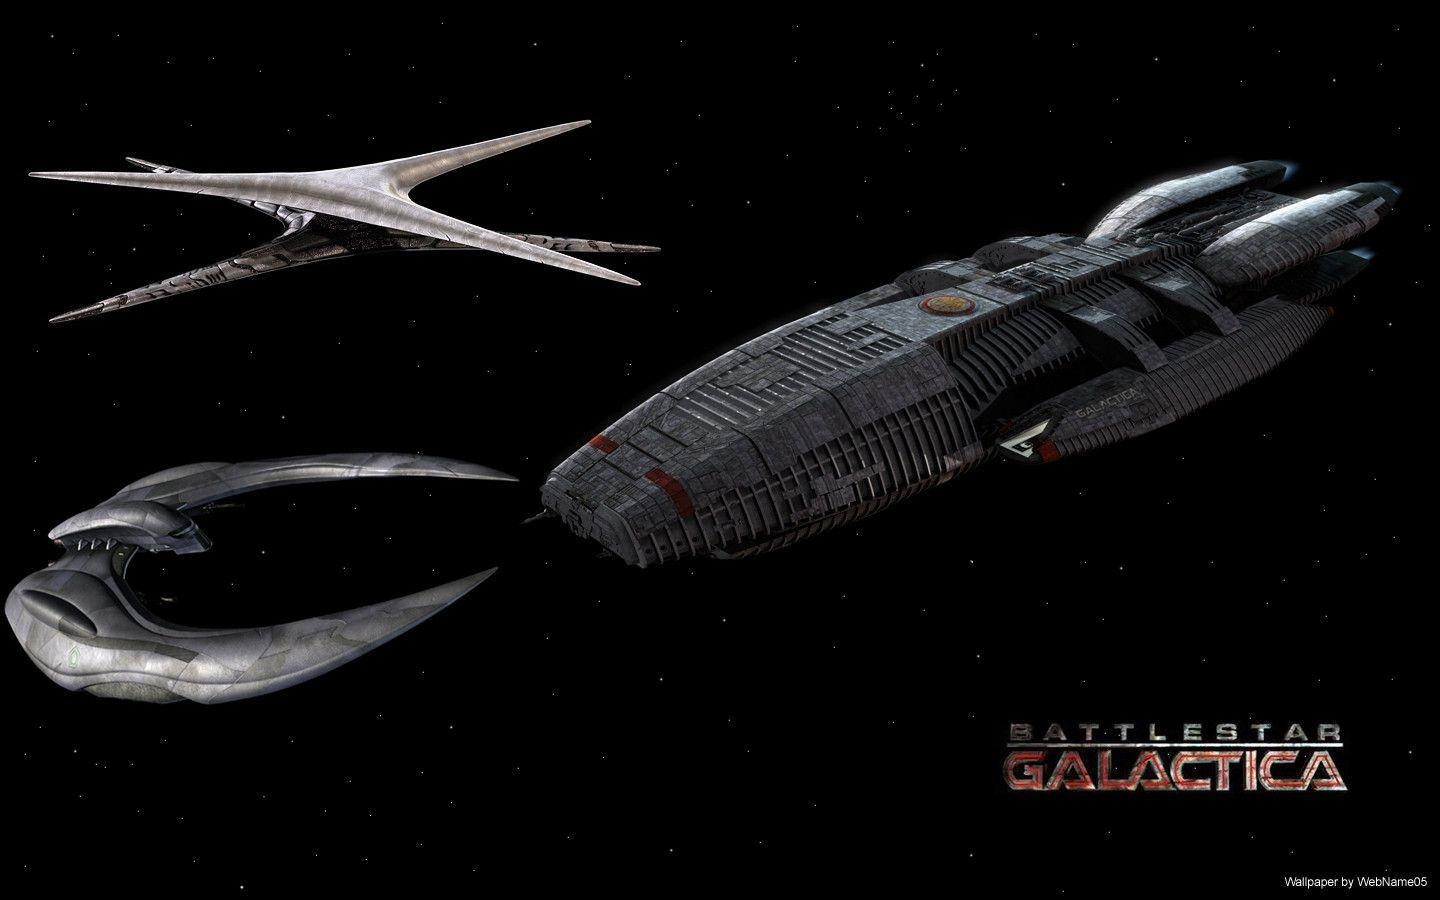 Battlestar Galactica Wallpapers by webname05